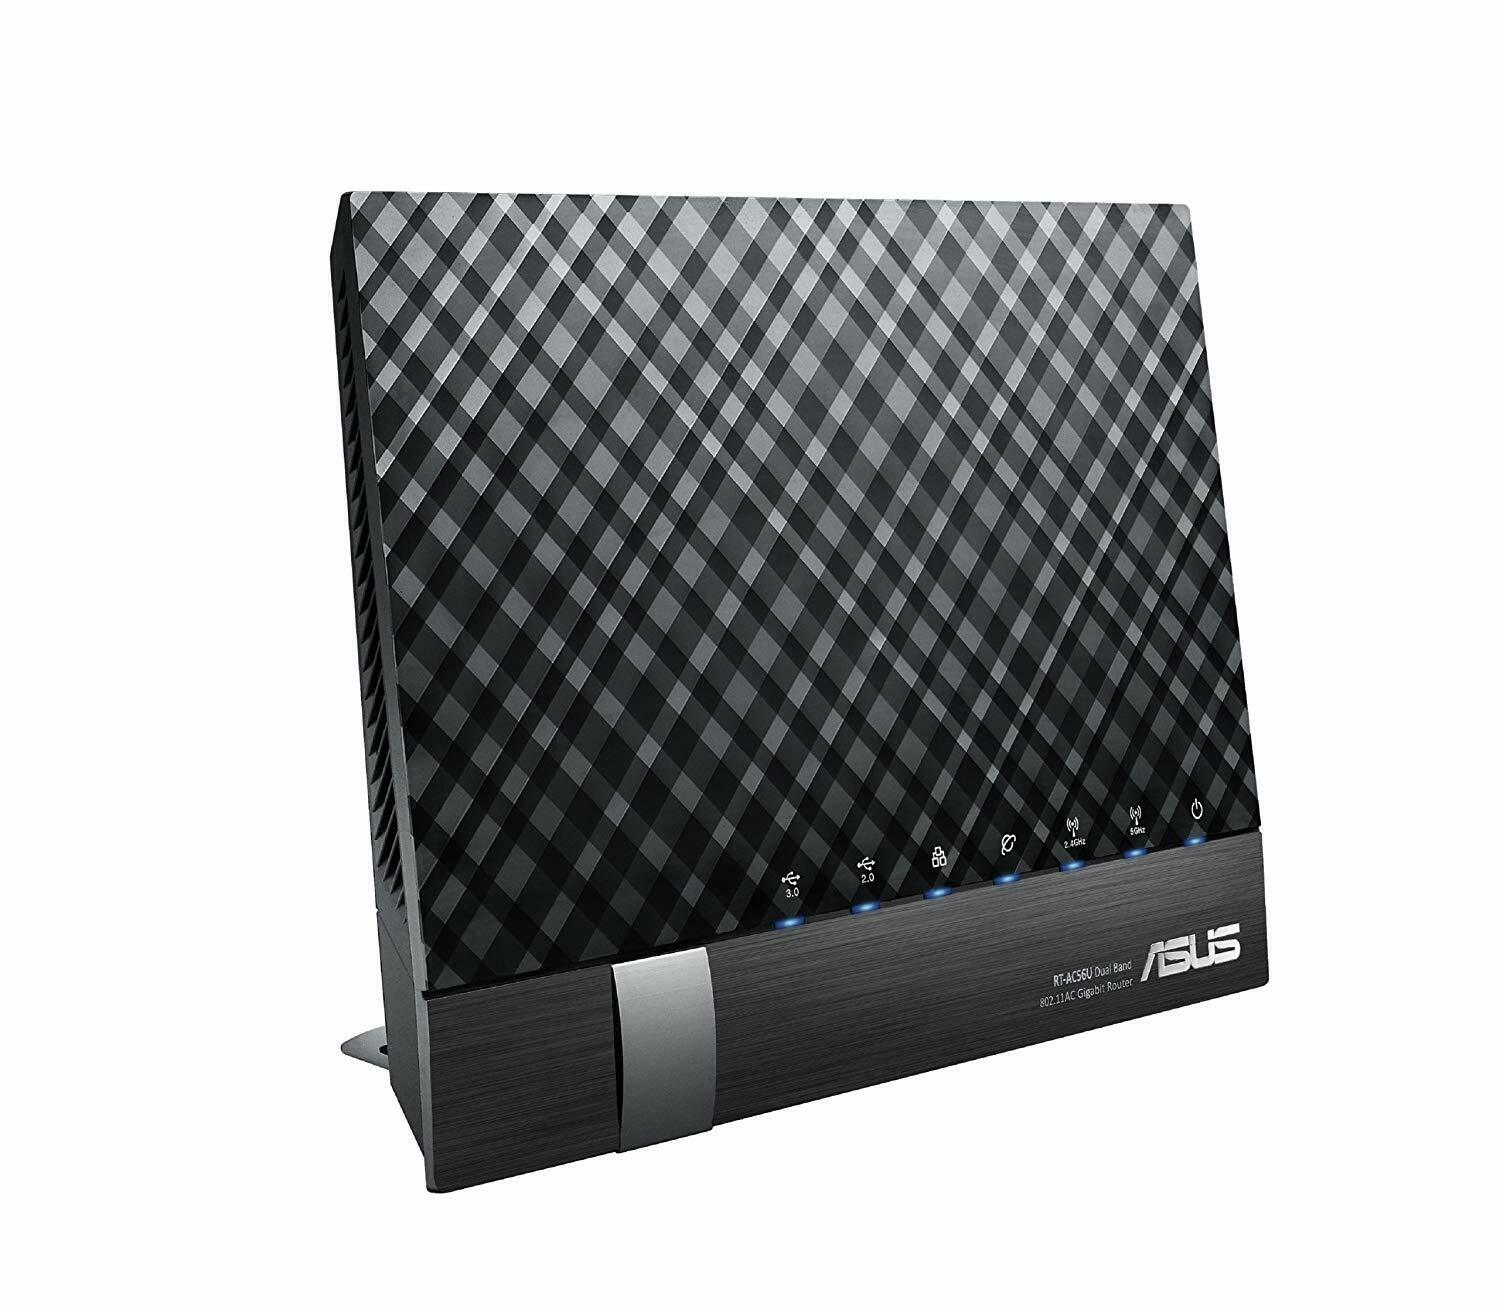 ASUS RT-AC56U Gigabit-Router - 802.11ac Dualband Wireless-AC1200